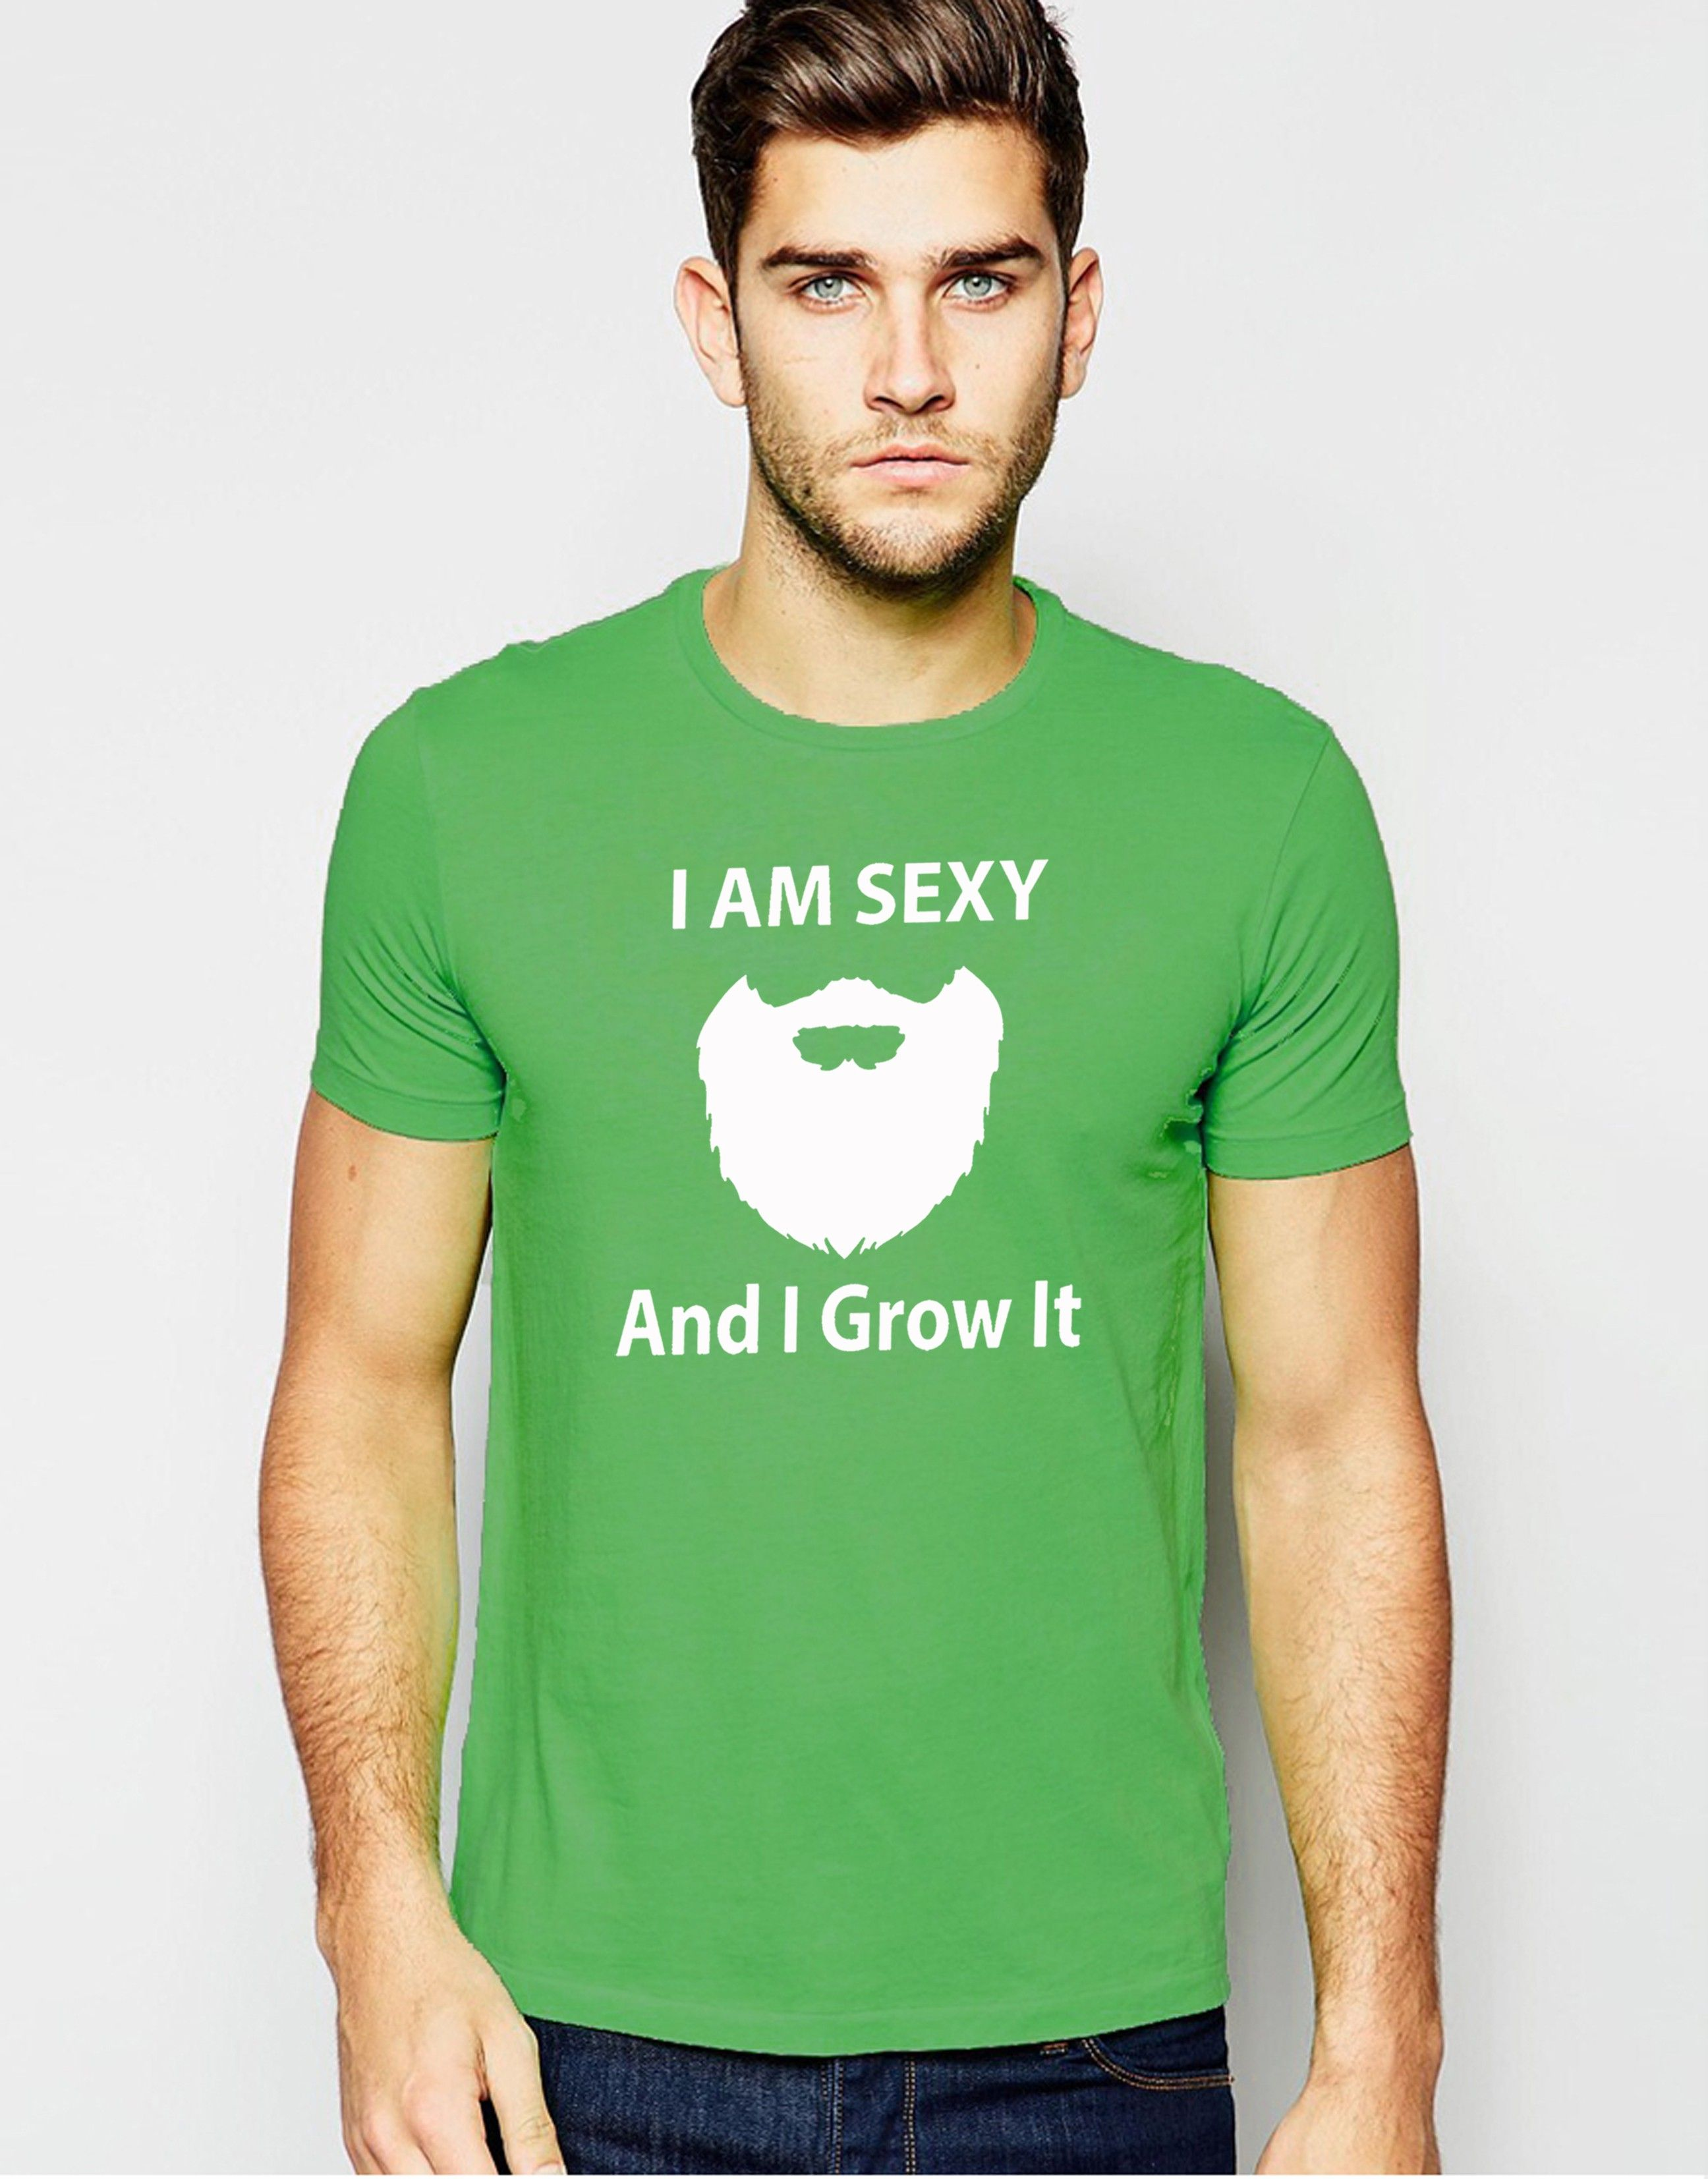 f845632c Young Trendz Printed Men's Round Neck T-Shirt - Buy Green Young Trendz  Printed Men's Round Neck T-Shirt Online at Best Prices in India |  Flipkart.com